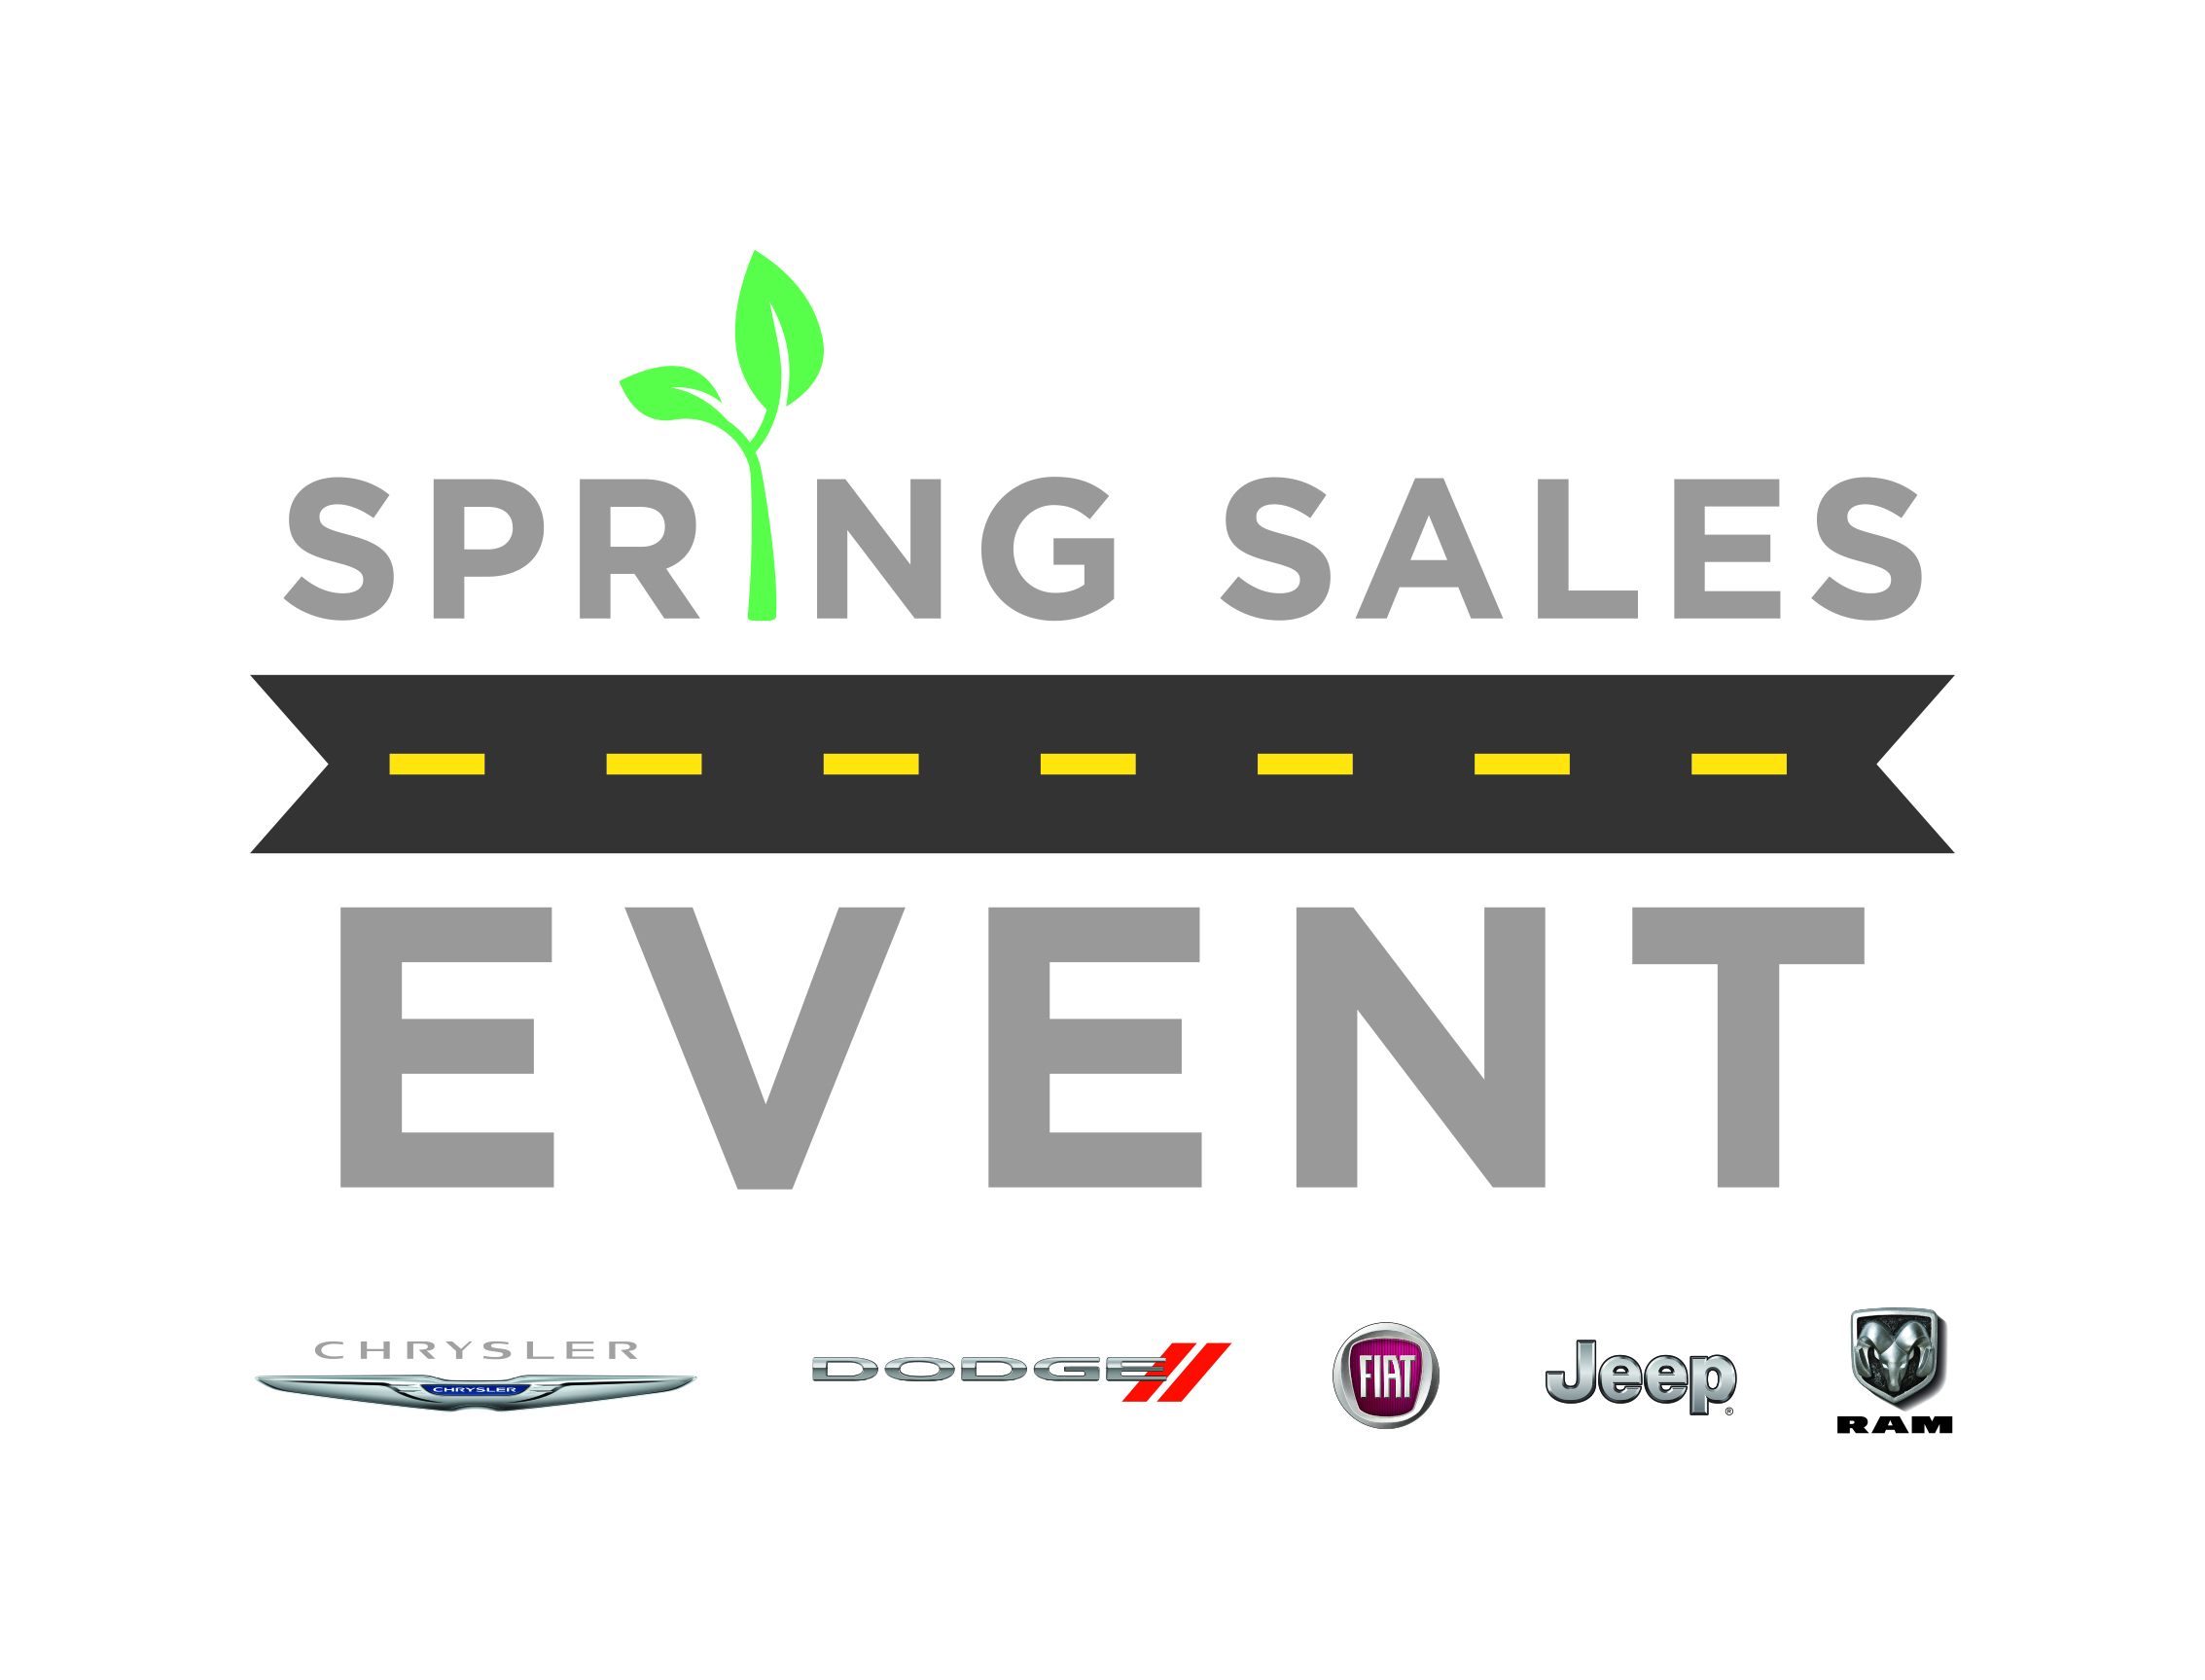 Spring Clearance Sales Event near Buffalo, NY